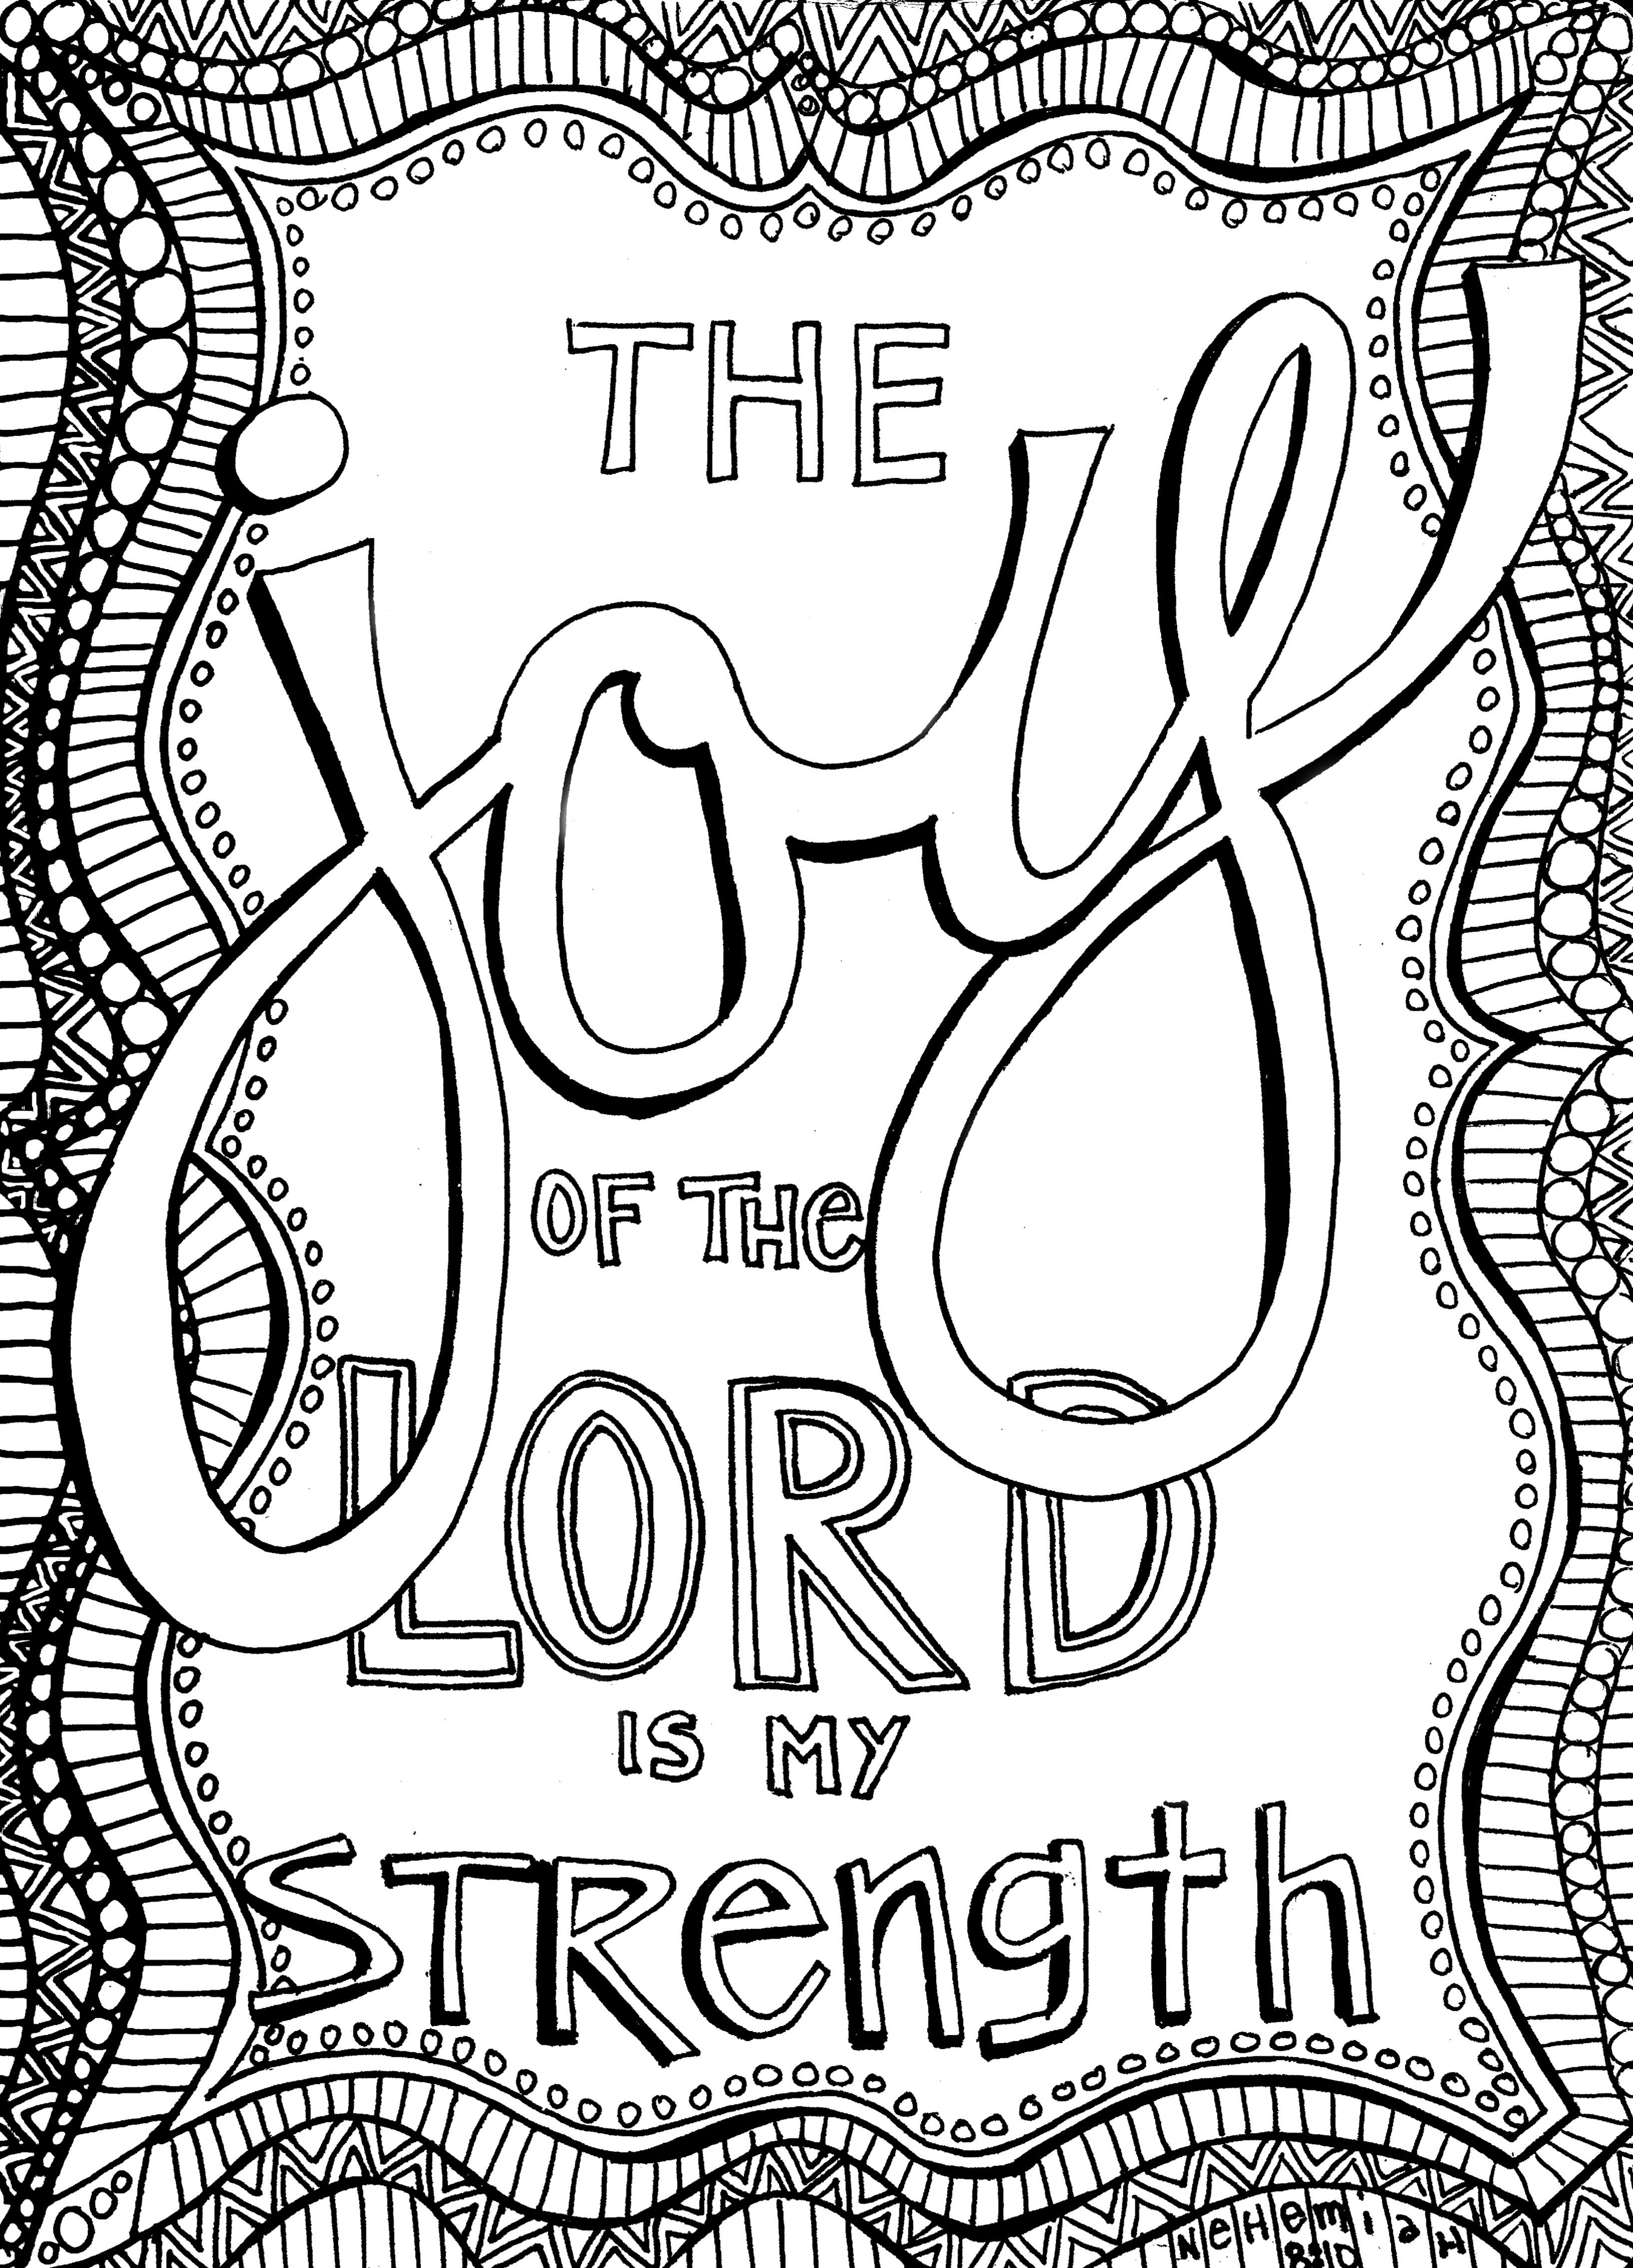 Free Christian Coloring Pages For Adults - Roundup - Joditt Designs - Free Printable Bible Coloring Pages